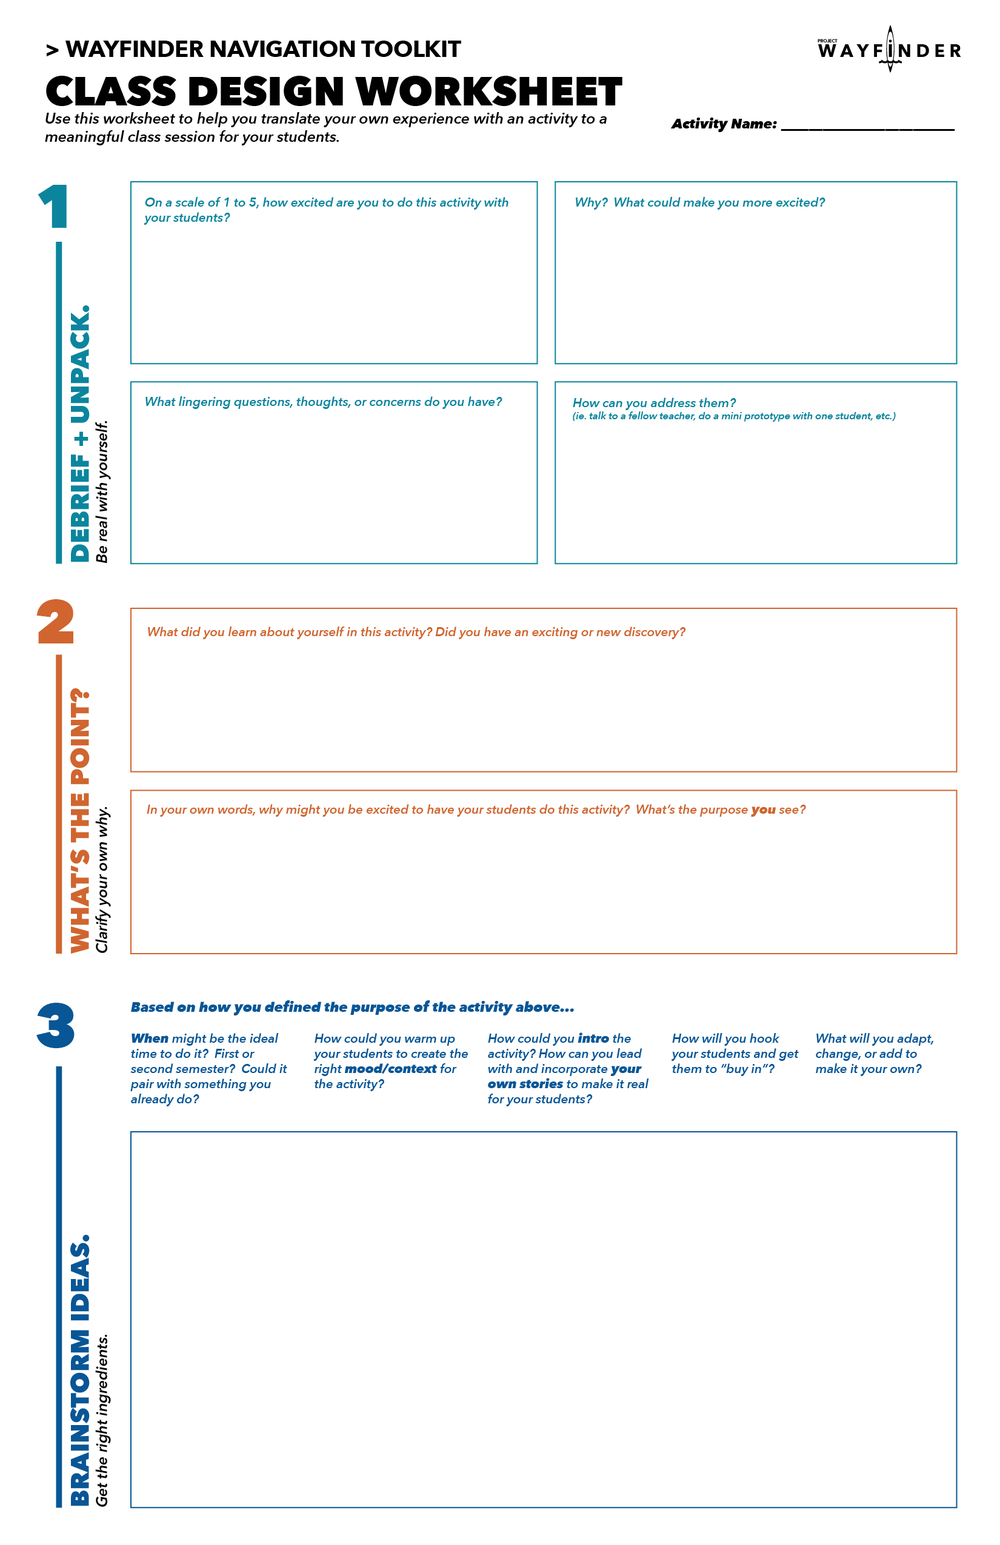 Class Design Worksheet (front)-02.png